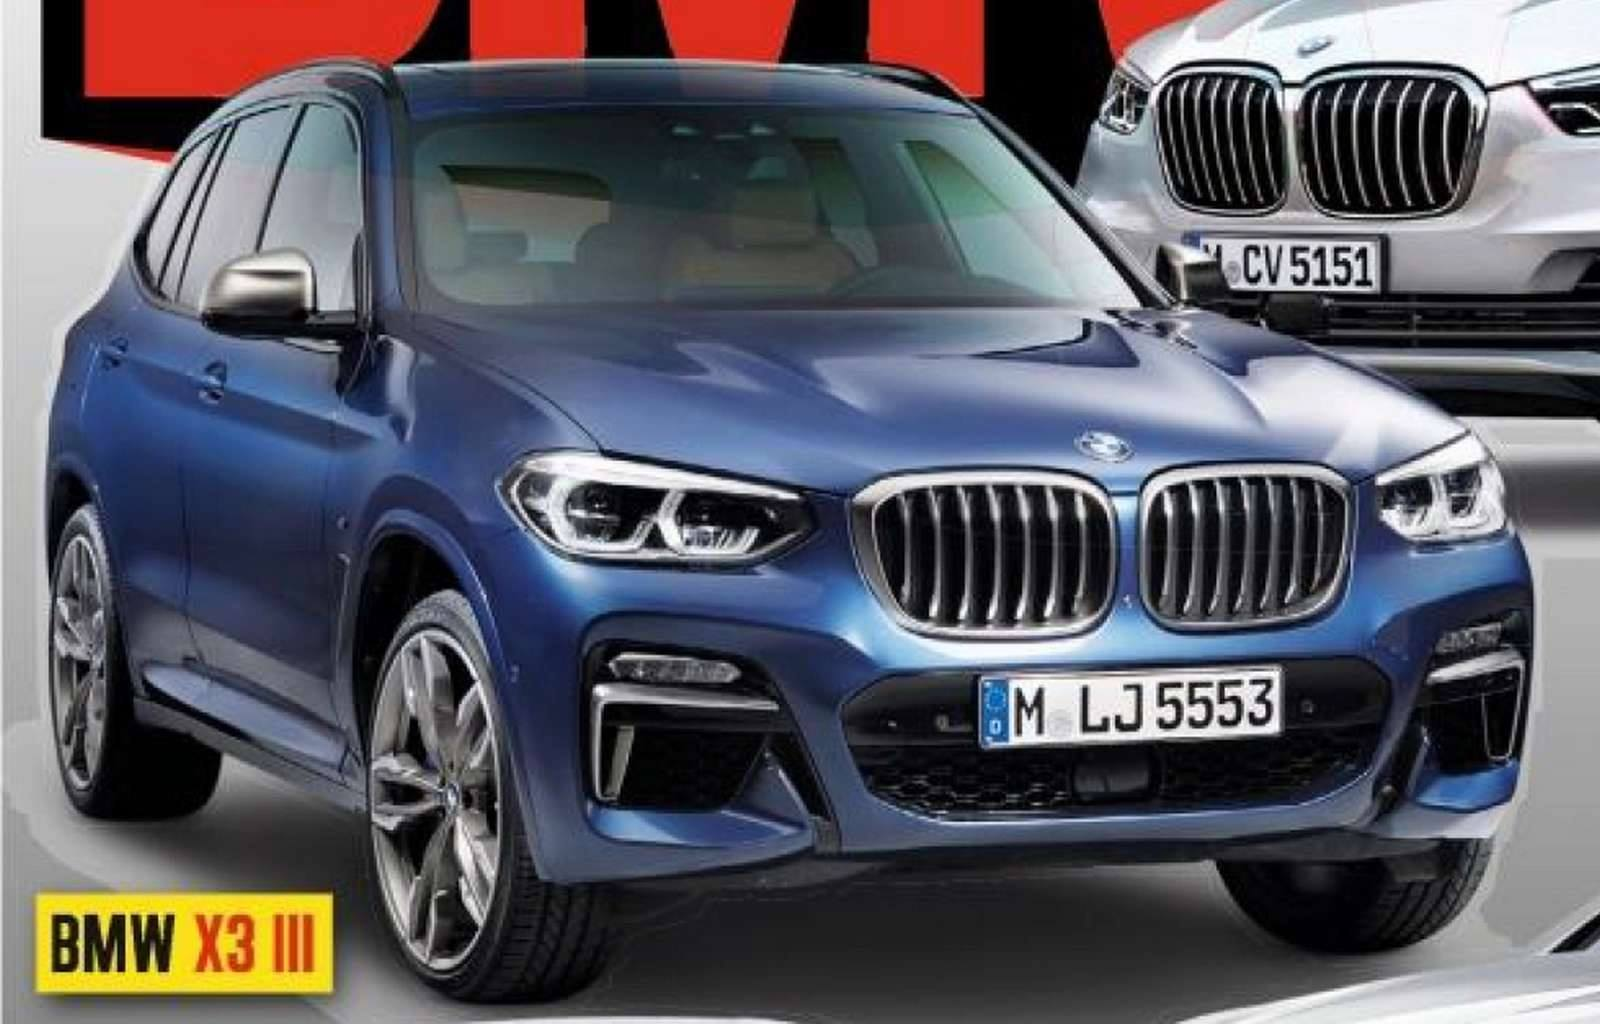 BMW X3 gets an early reveal